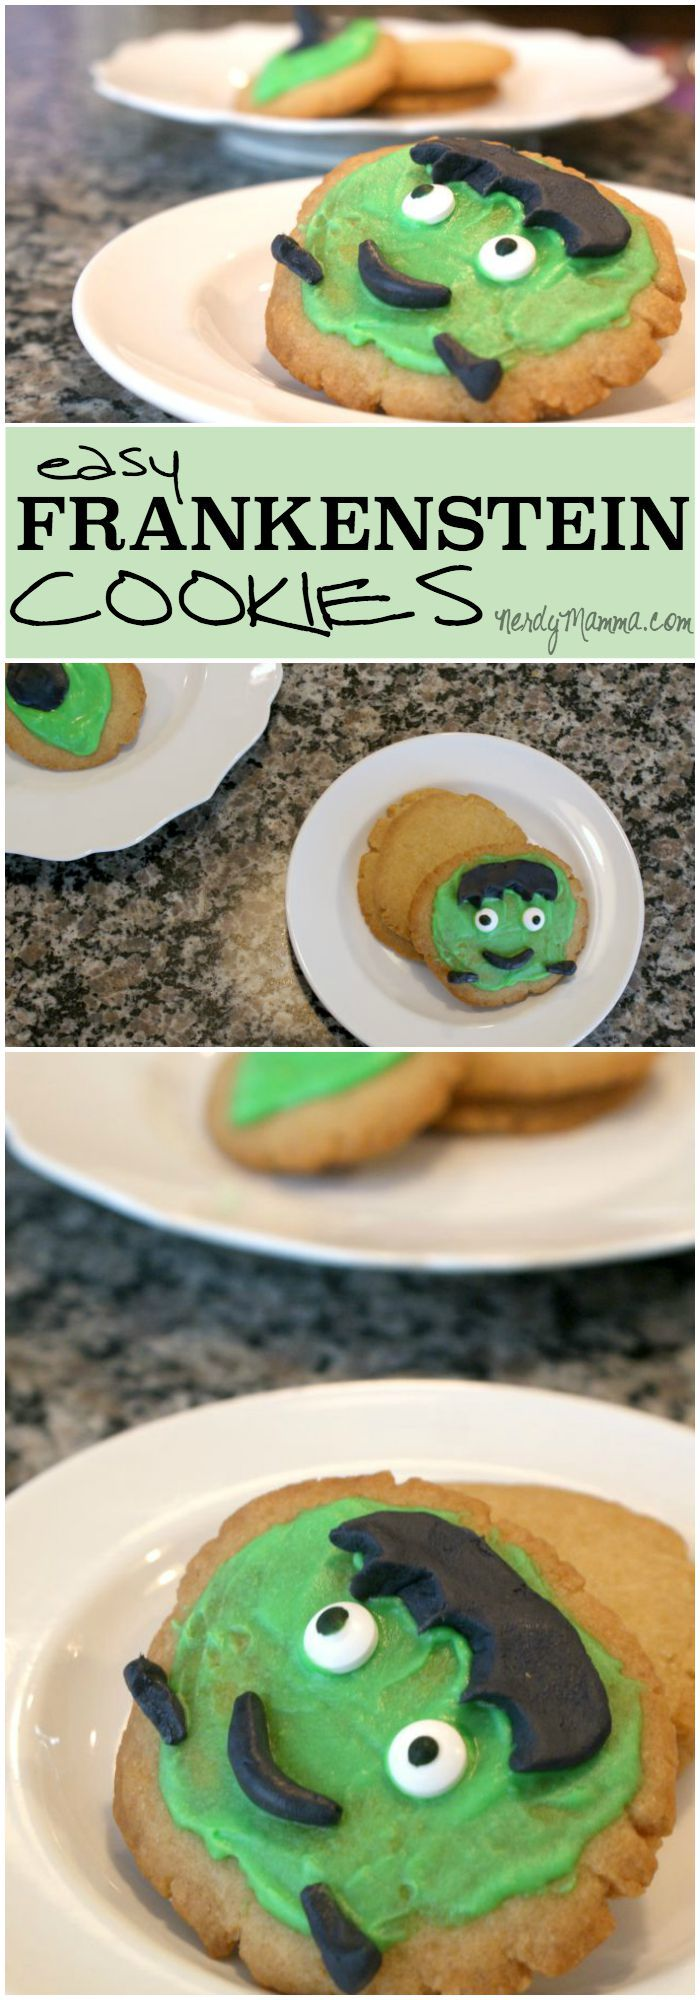 My whole family had fun decorating these silly frankenstein cookies for halloween.